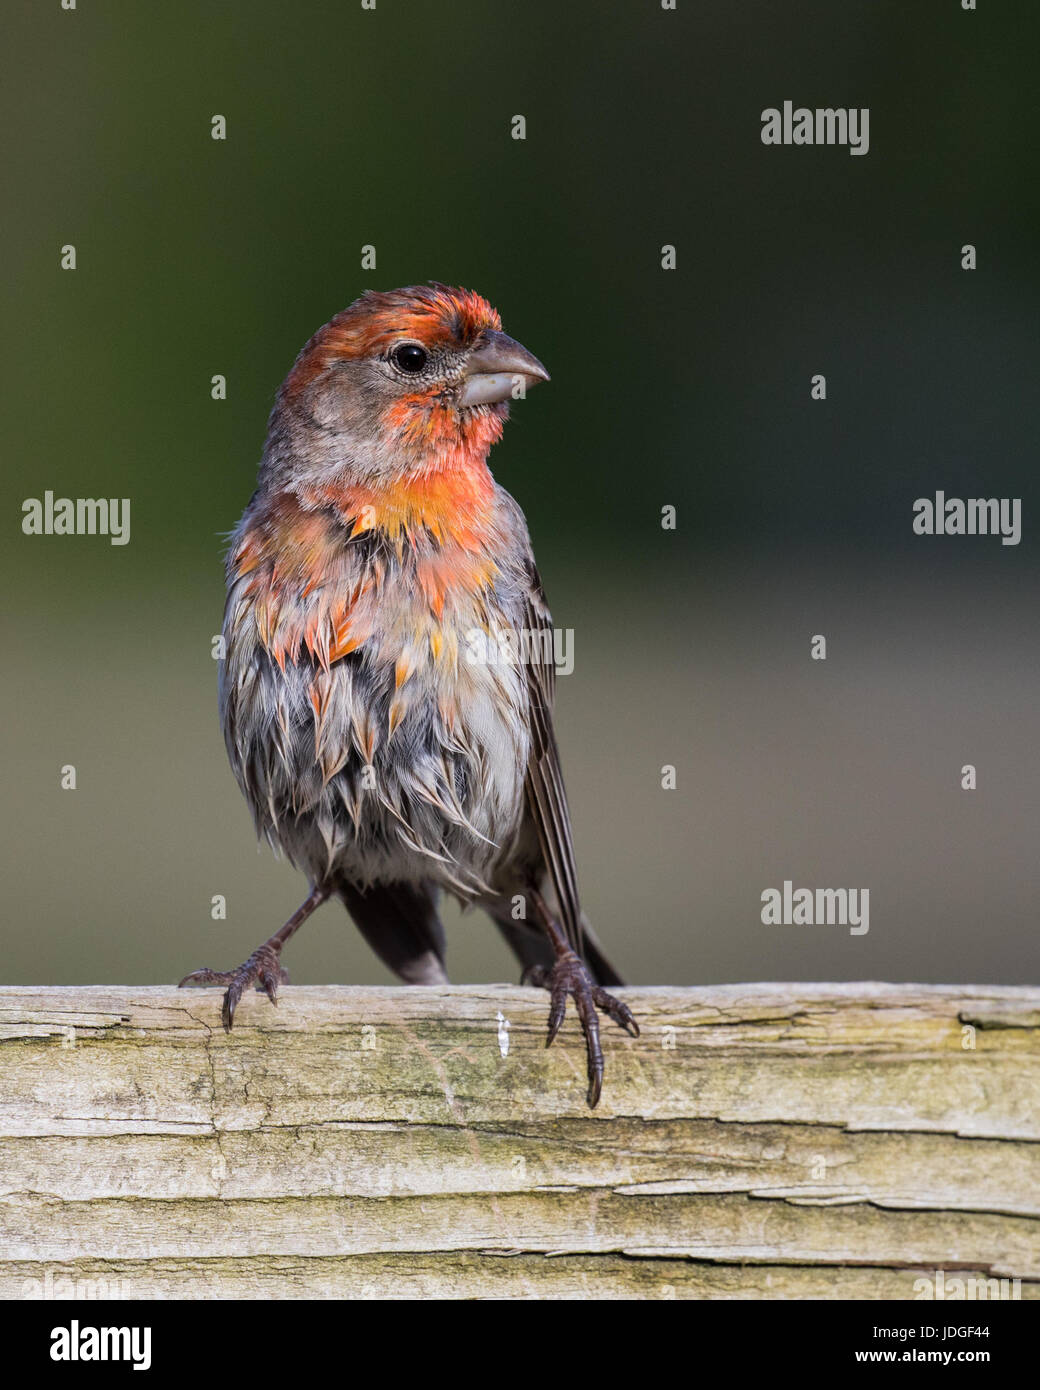 Beautiful, red male House Finch perched on a wooden fence. - Stock Image